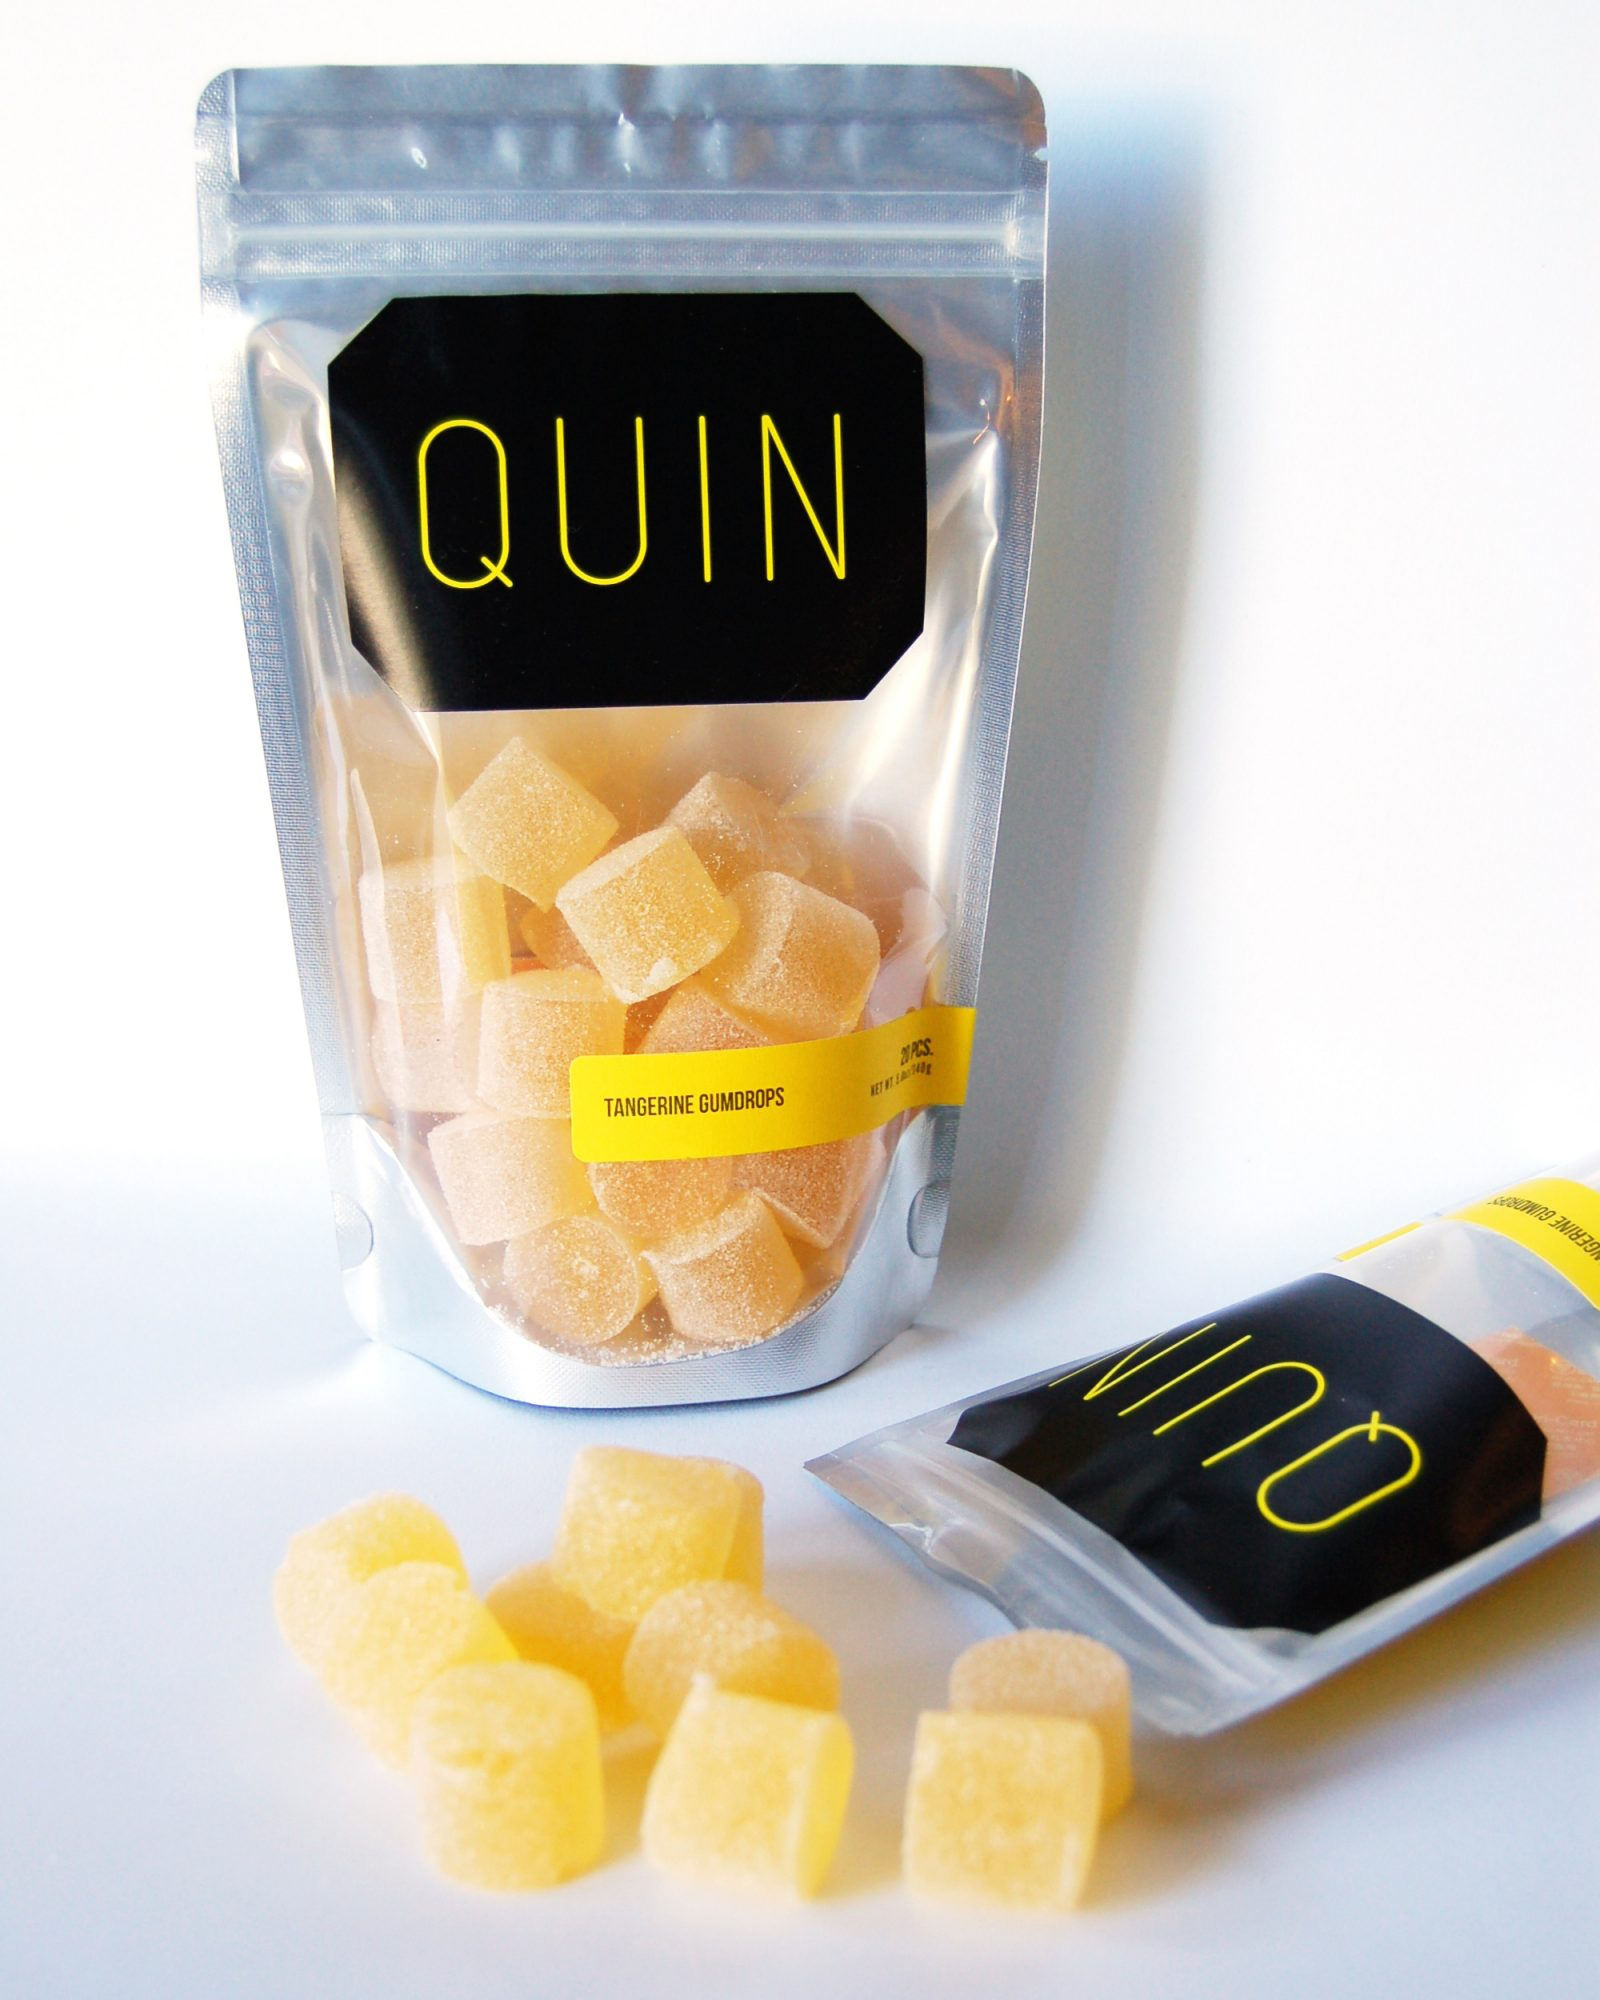 quin-candy-suitessweets-0315.jpg